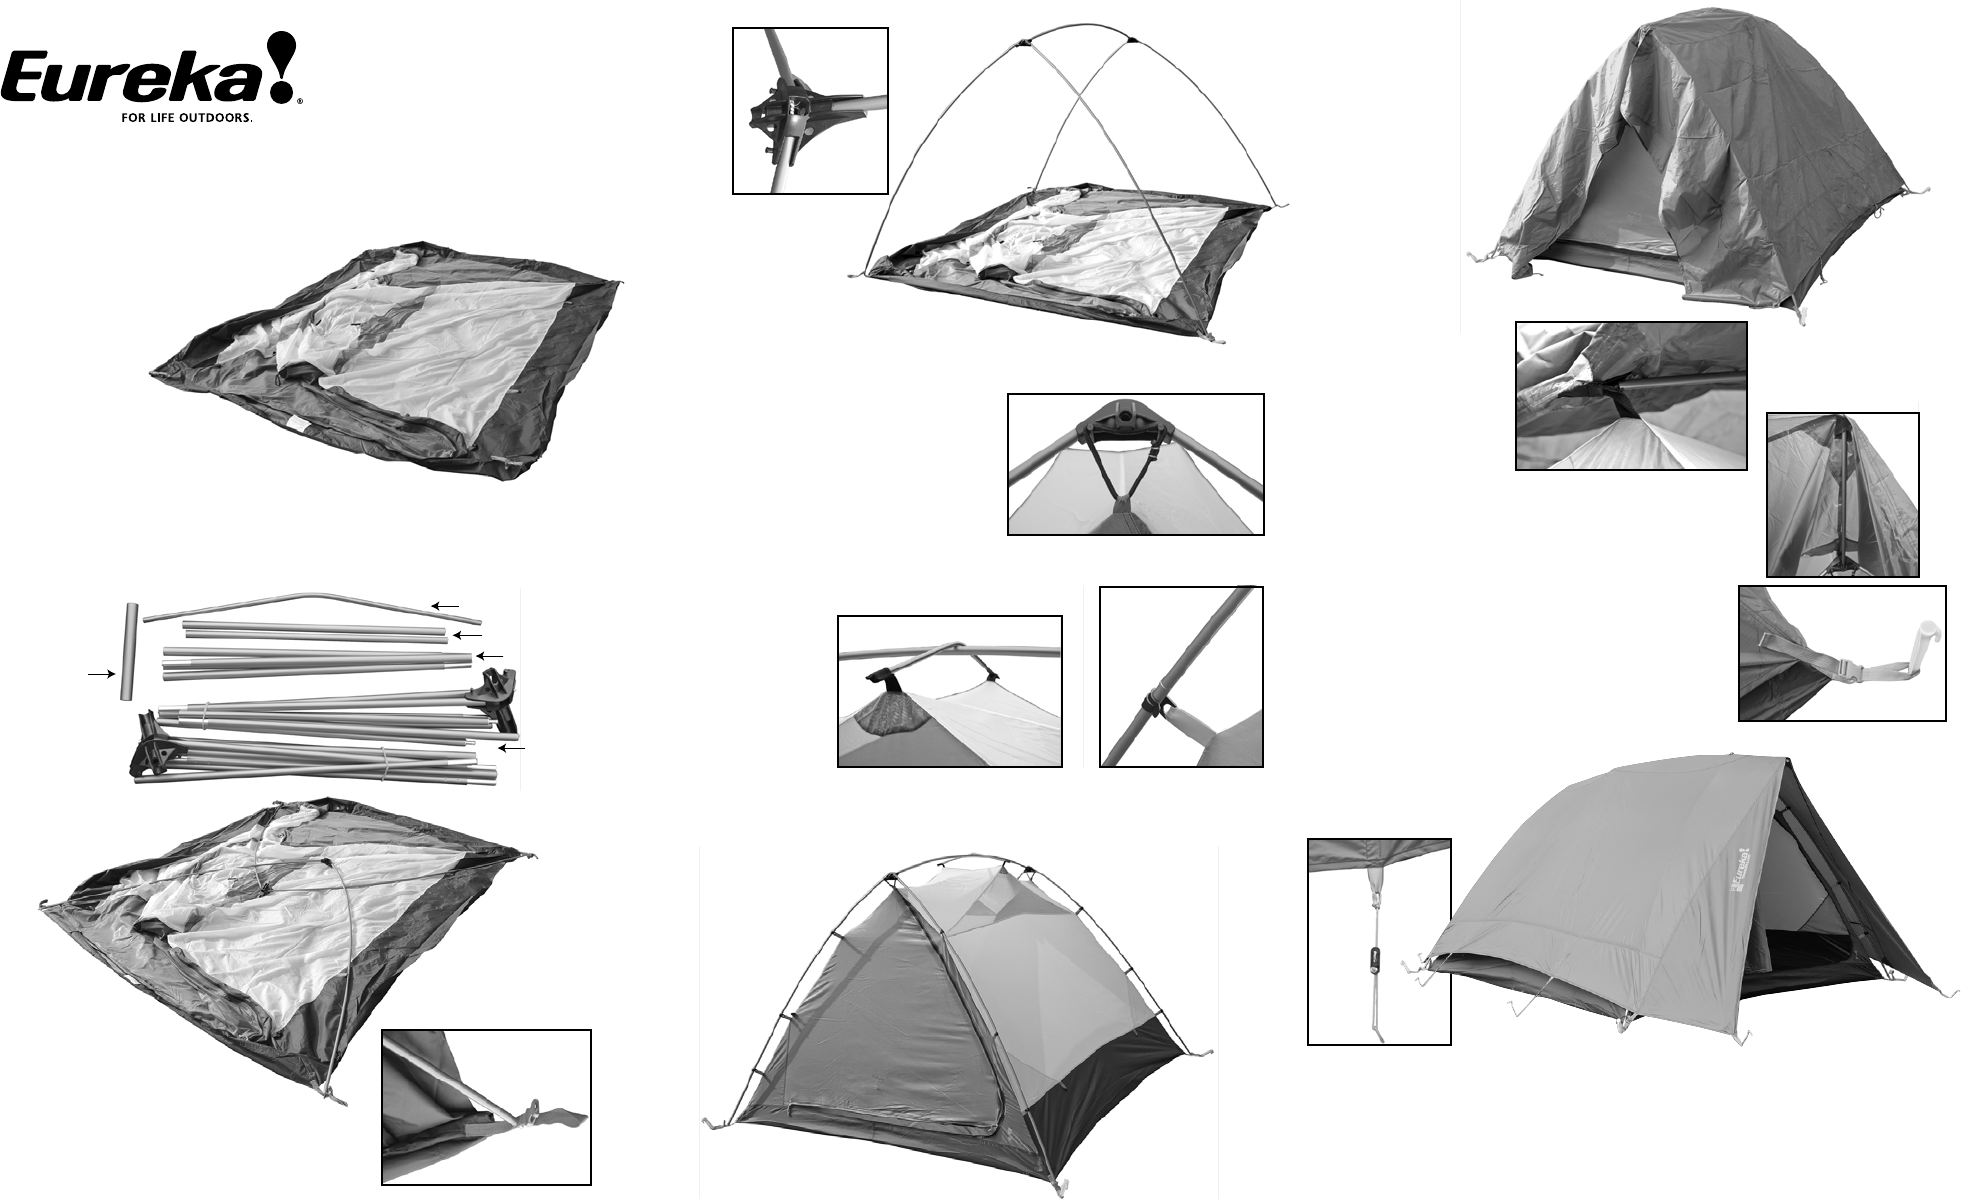 Tents Timberline SQ Outfitter Tent User Manual  sc 1 st  Fitness u0026 Sports - ManualsOnline.com & Eureka! Tents Tent Timberline SQ Outfitter User Guide ...